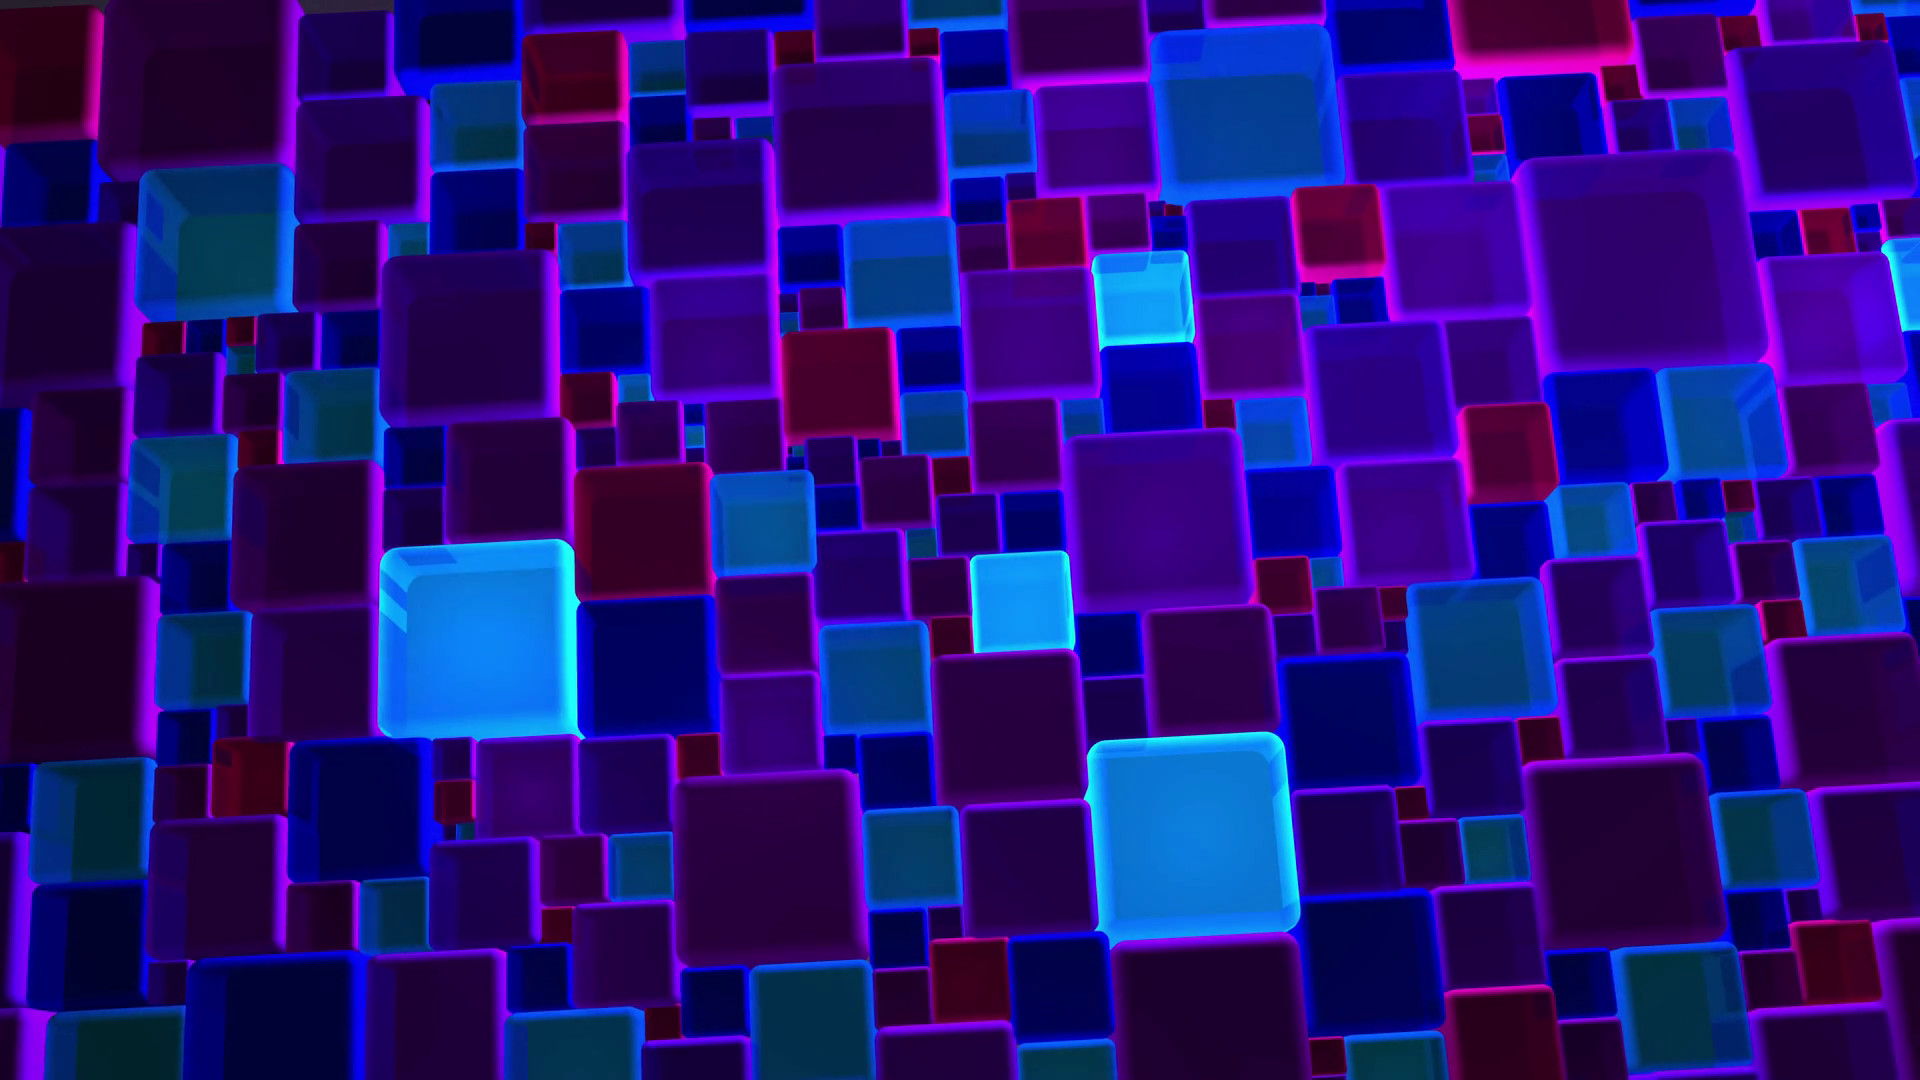 Subscription Library Neon Blue And Violet Lights Cubes Background In 4k